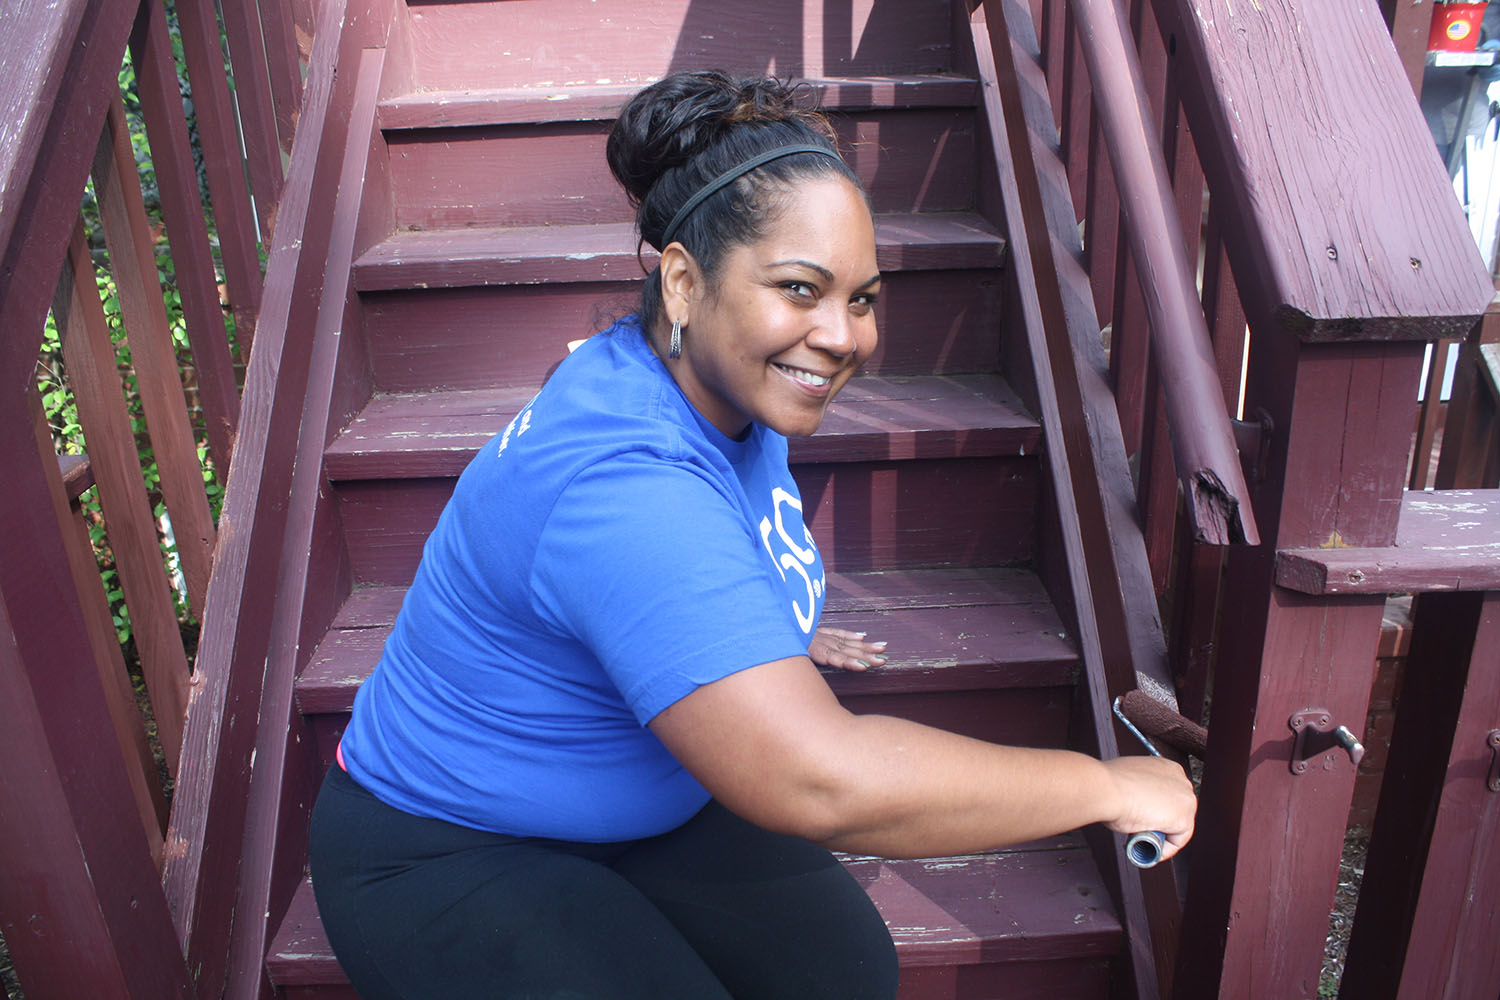 photo of smiling volunteer painting a stair railing